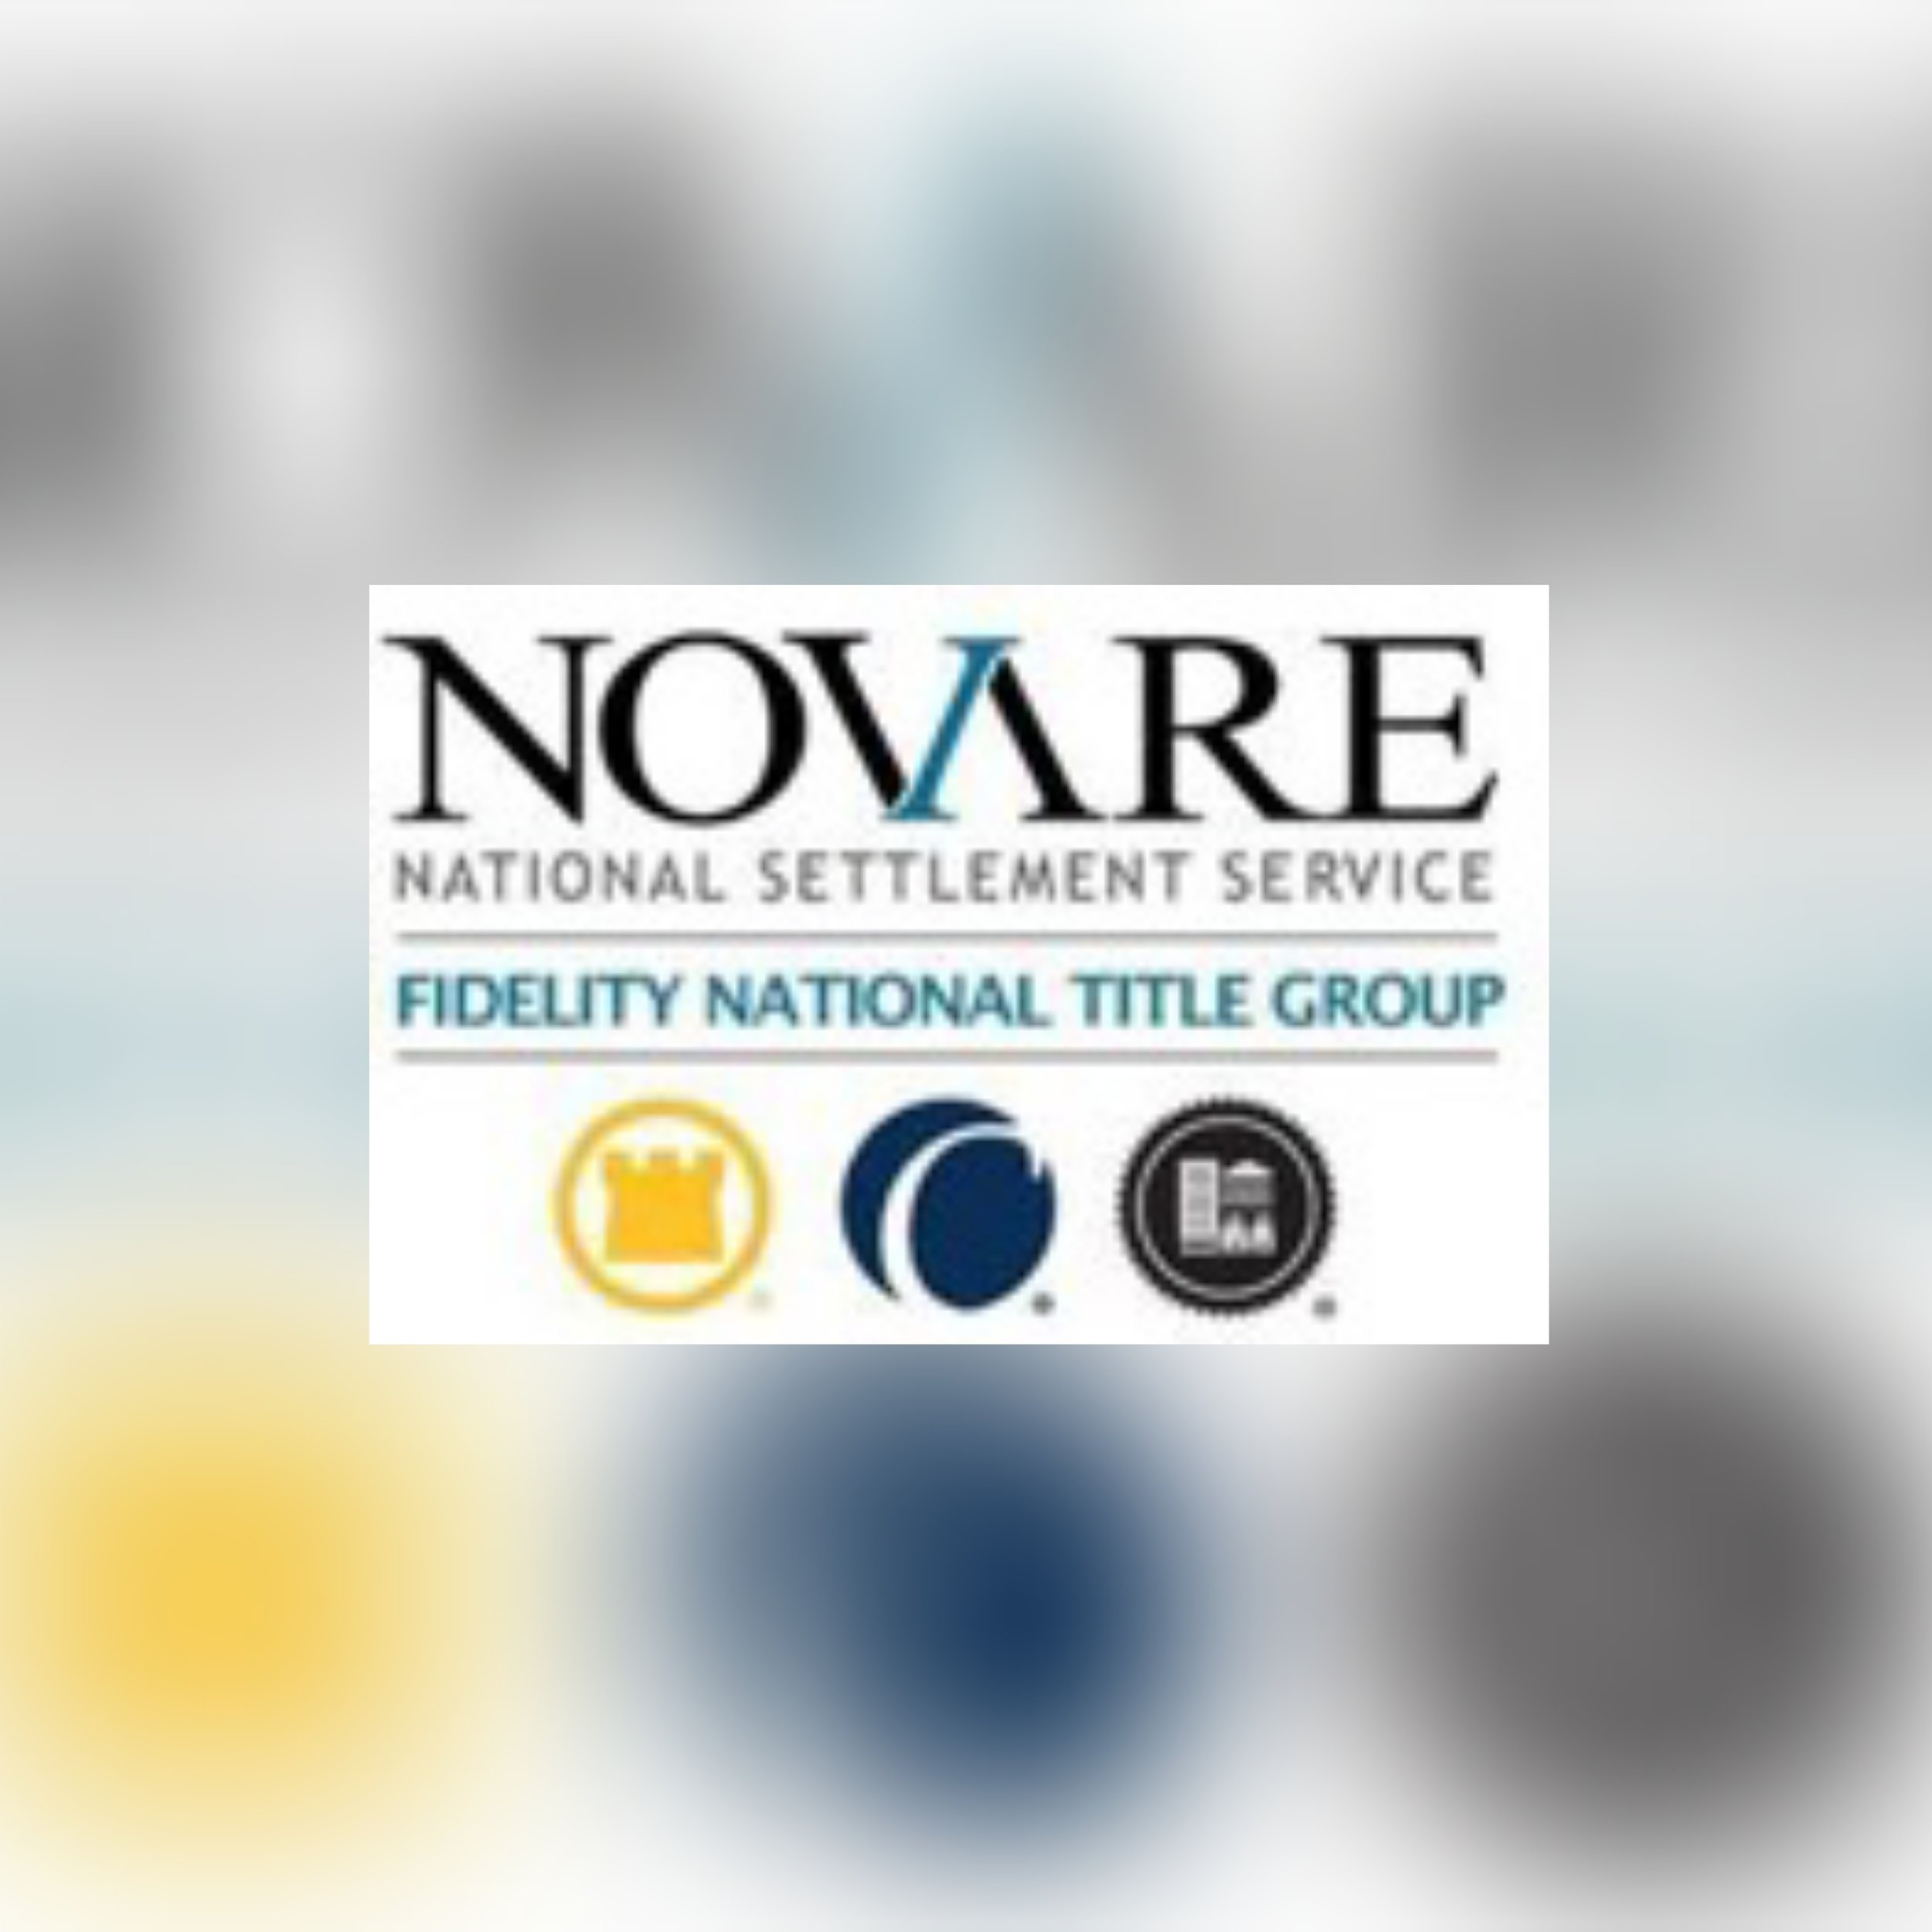 Commercial, National, Residential, Novare Has You Covered. - Novare is an appointed agent for Fidelity National Title. That is a huge deal! You know the quality and and commitment a company would need to have in order to work hand in hand with such an esteemed company such as Fidelity. You will get great customer service, amazing offer's and a reach on a national level that not too many companies can claim.Susan Pettem Senior Vice President 320 Commerce, suite 150 Irvine, CA 92602 Susan.Pettem@NovareNSS.com Direct - 949.466.7313 Fax - 949.509.7411